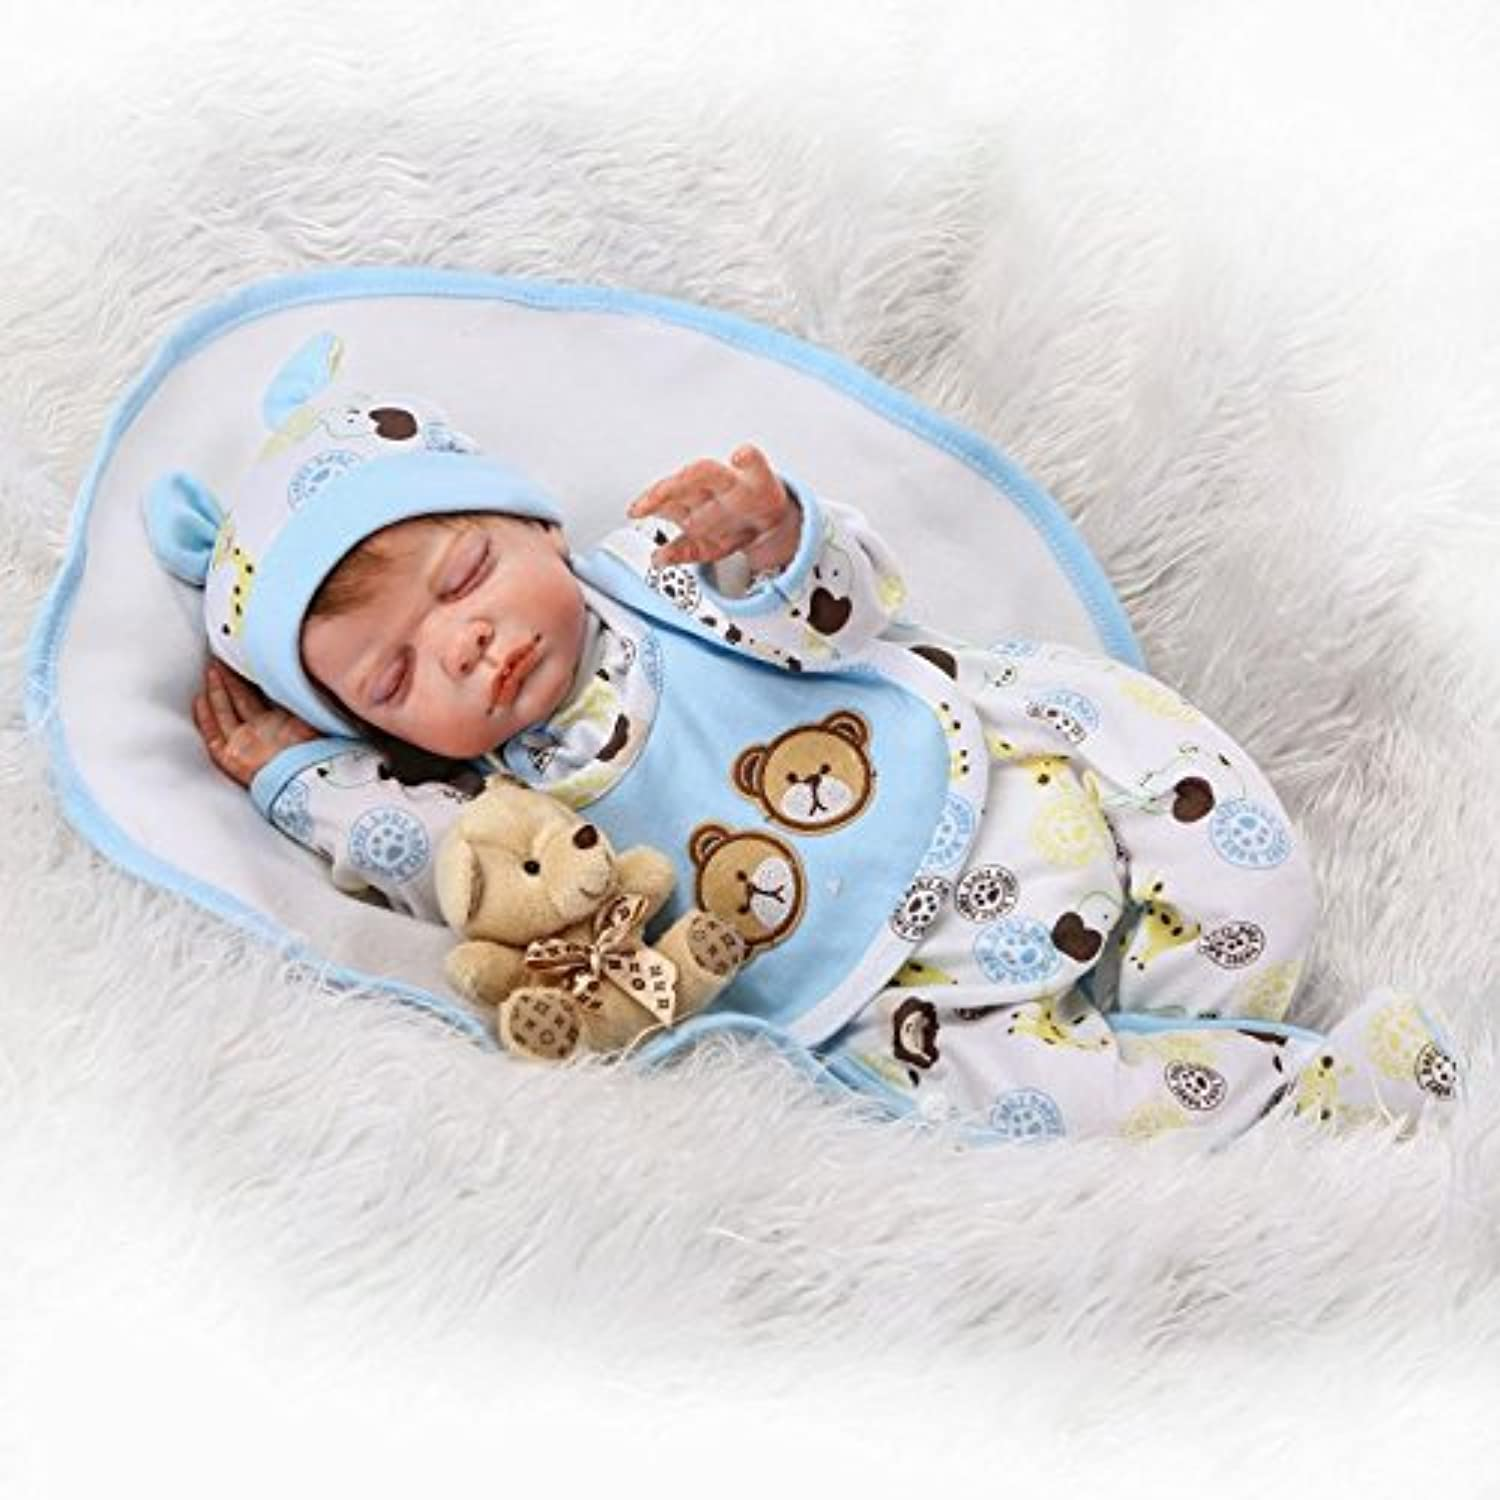 LILITH NEW 22 Inch 55cm Real Lifelike Looking Reborn Doll Realistic Soft Silicone Baby Girl Boy Doll Toddler Vinyl Soft Body Free Magnet Pacifier